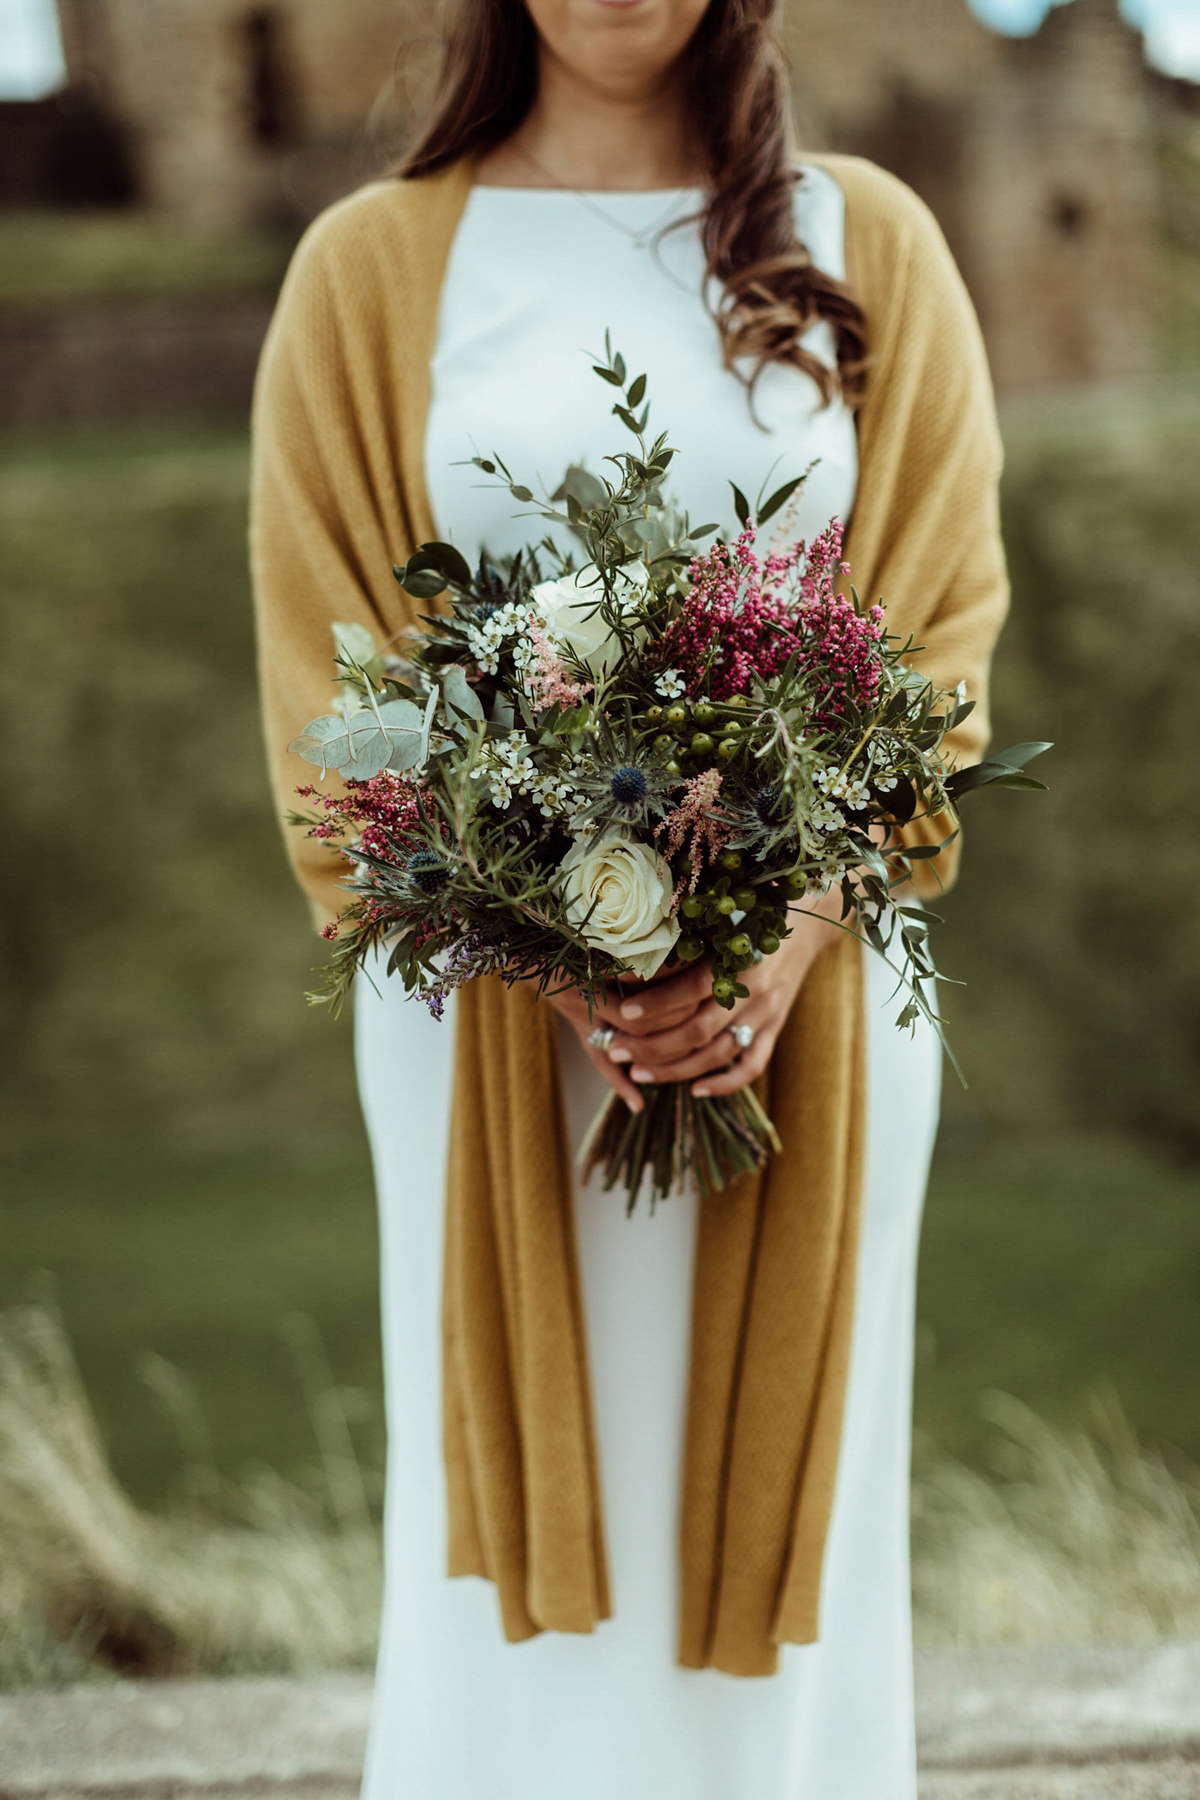 A Bride in Boots and Charlie Brear Gown for an Intimate Wedding in the Great Outdoors (Weddings )